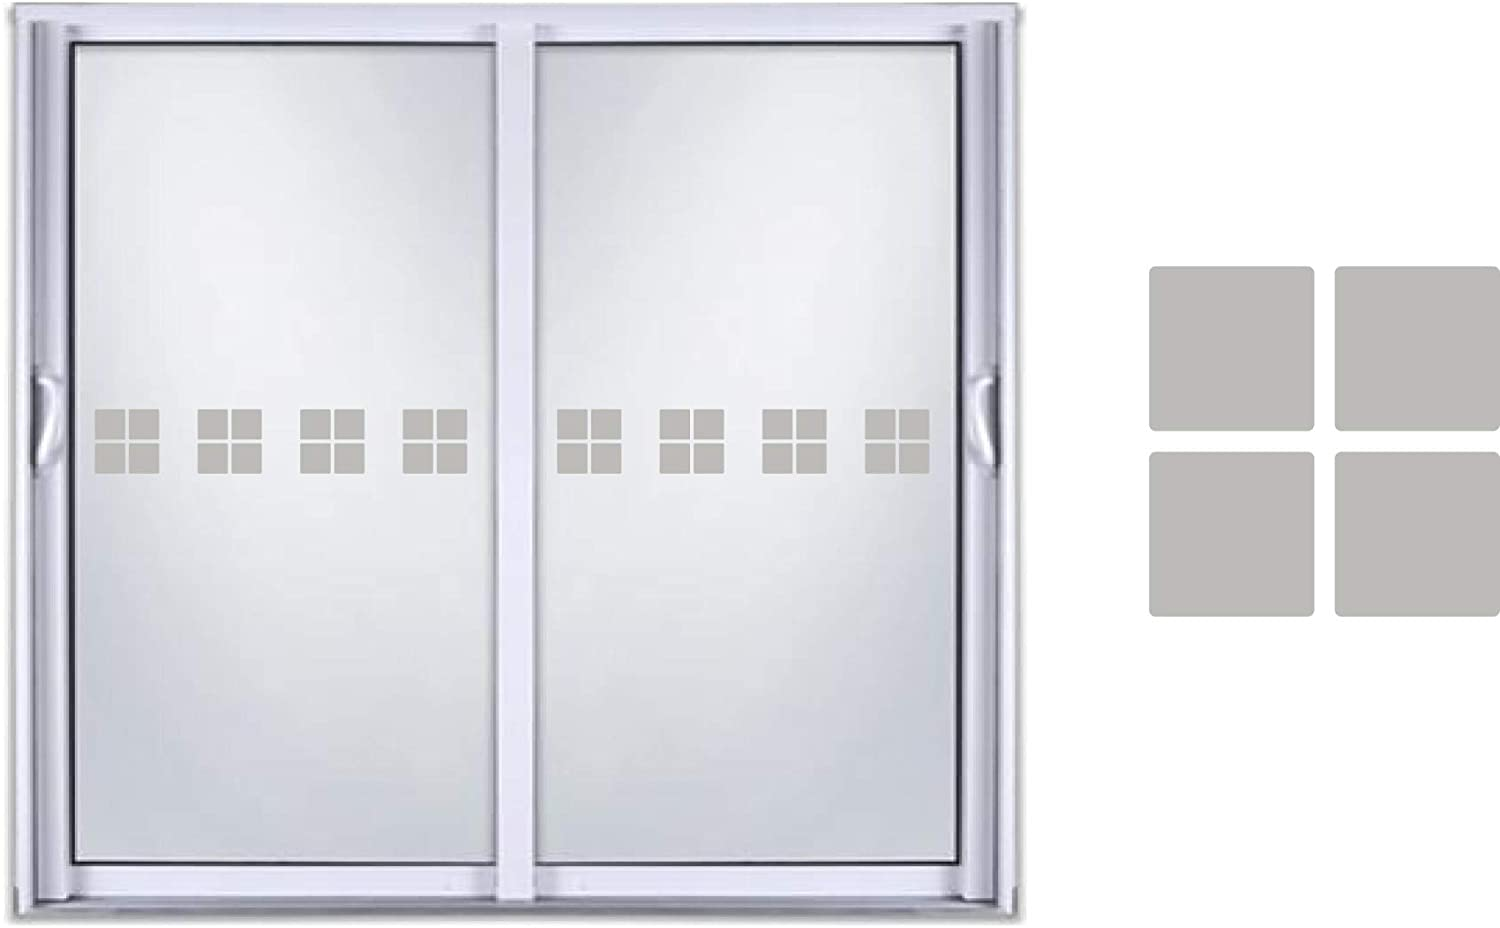 Sliding Door Indicator Safety Film Etched Glass Frosted Vinyl Decal Sticker Squares